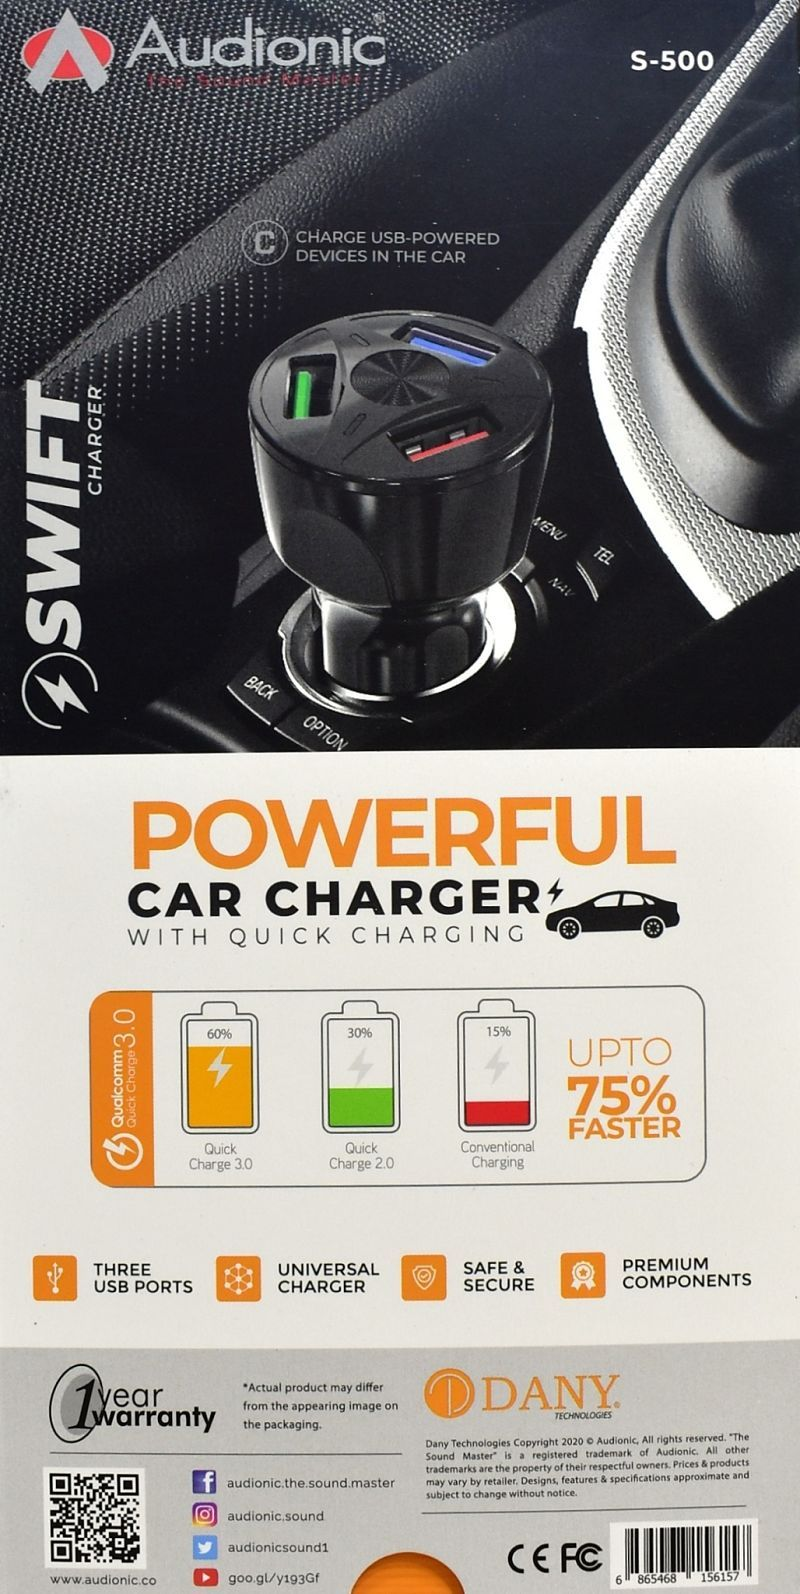 Audionic Swift S-500 Car Charger